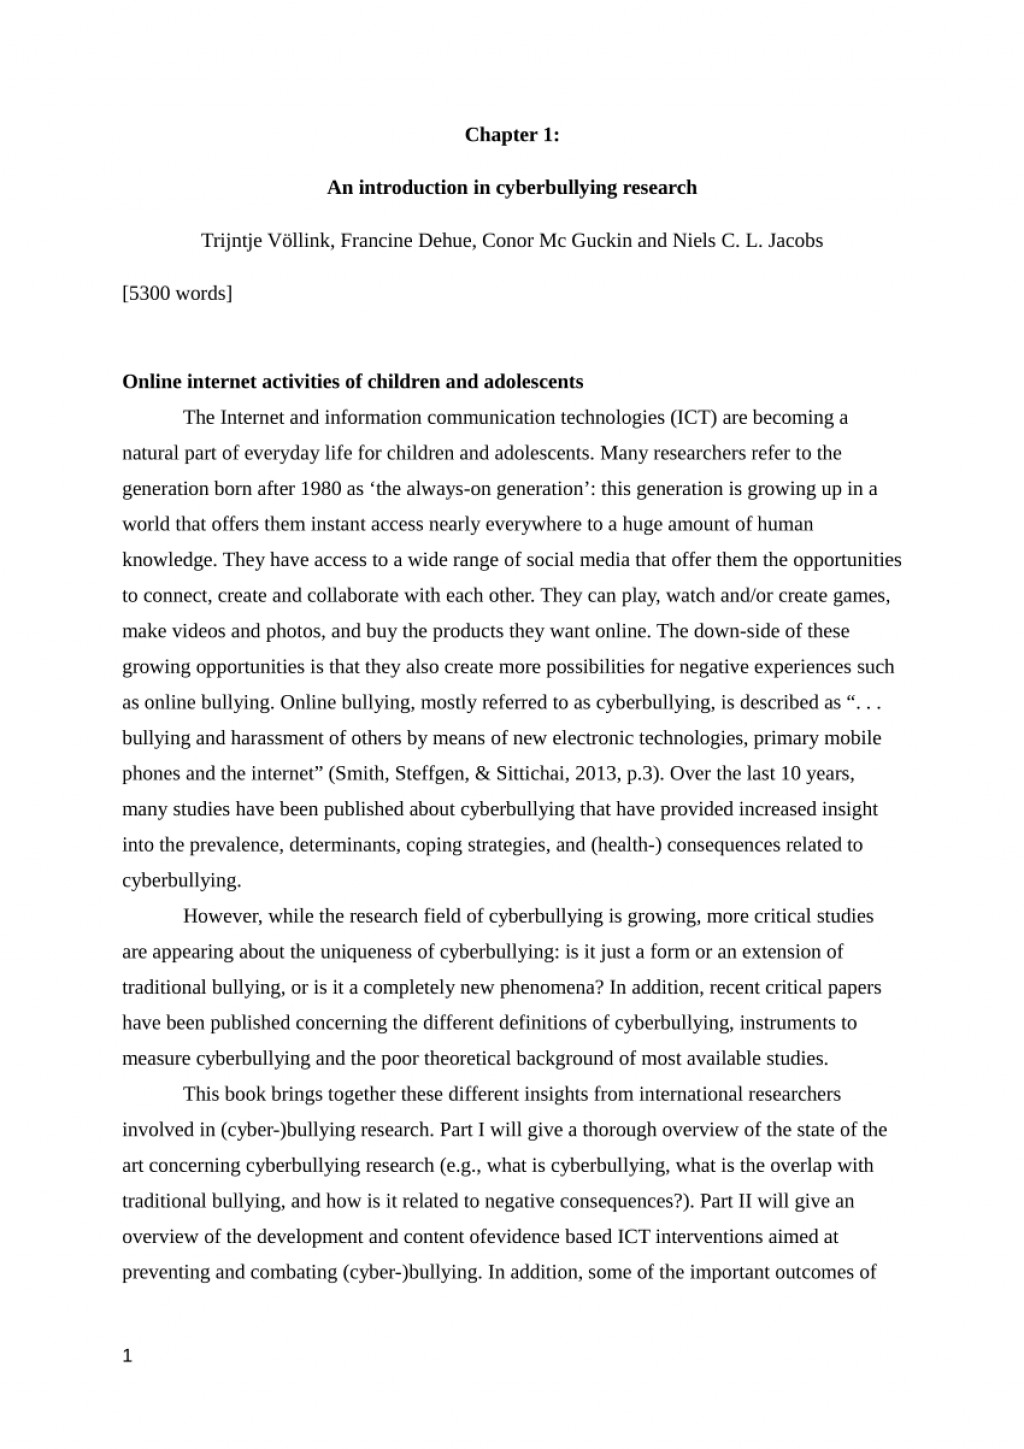 001 Cyberbullying Research Essay Paper Sensational Titles Tagalog Thesis Large